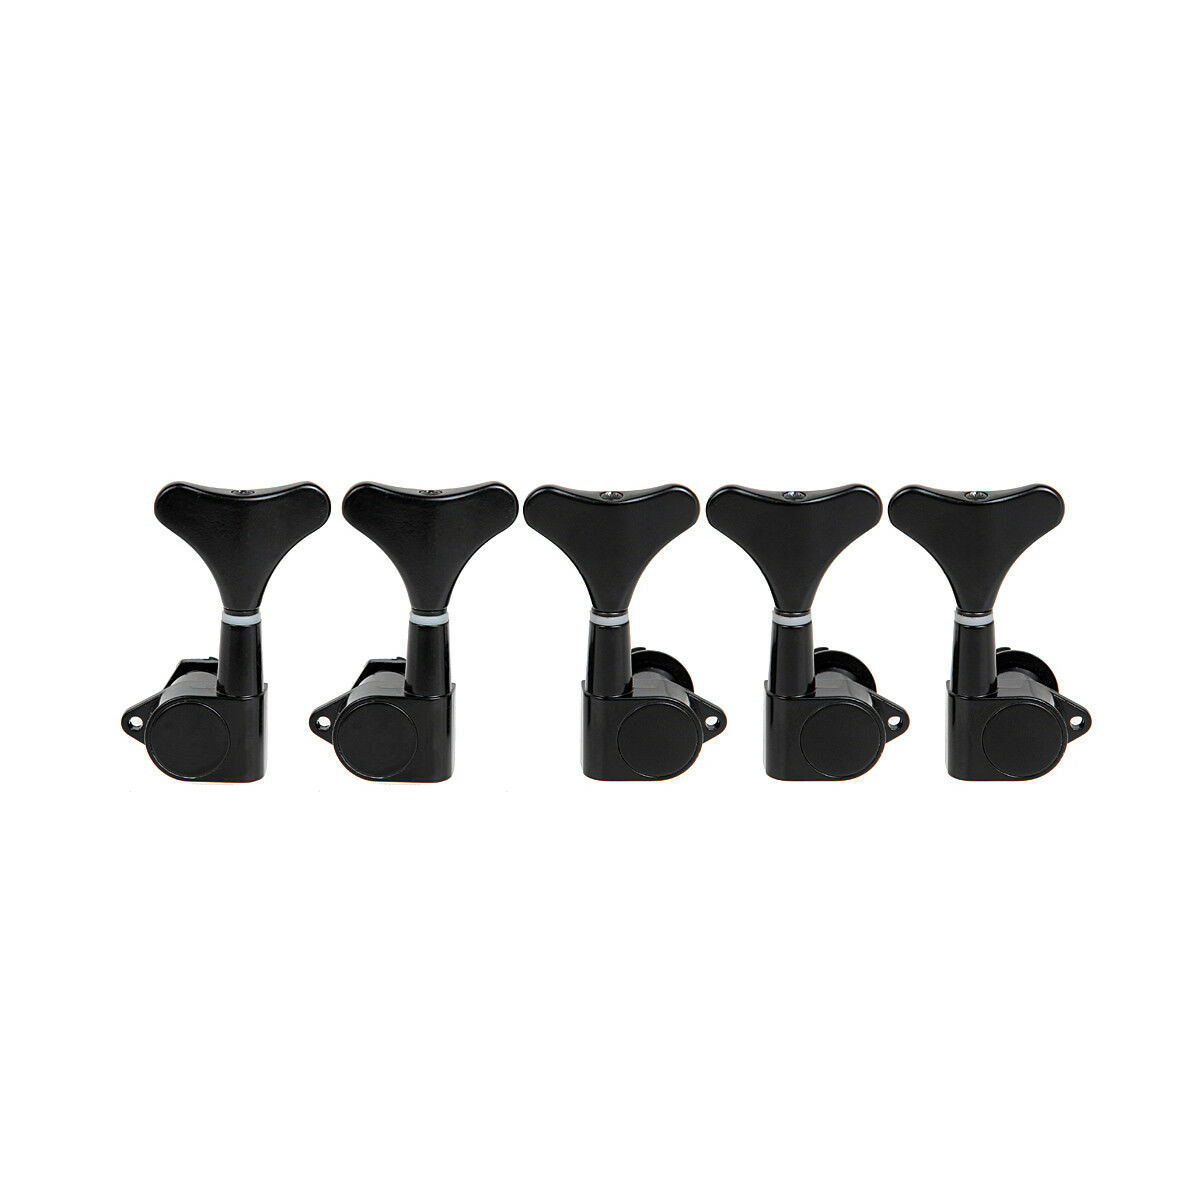 5 string electric bass guitar tuning pegs tuners machine heads sealed 2l3r black ebay. Black Bedroom Furniture Sets. Home Design Ideas